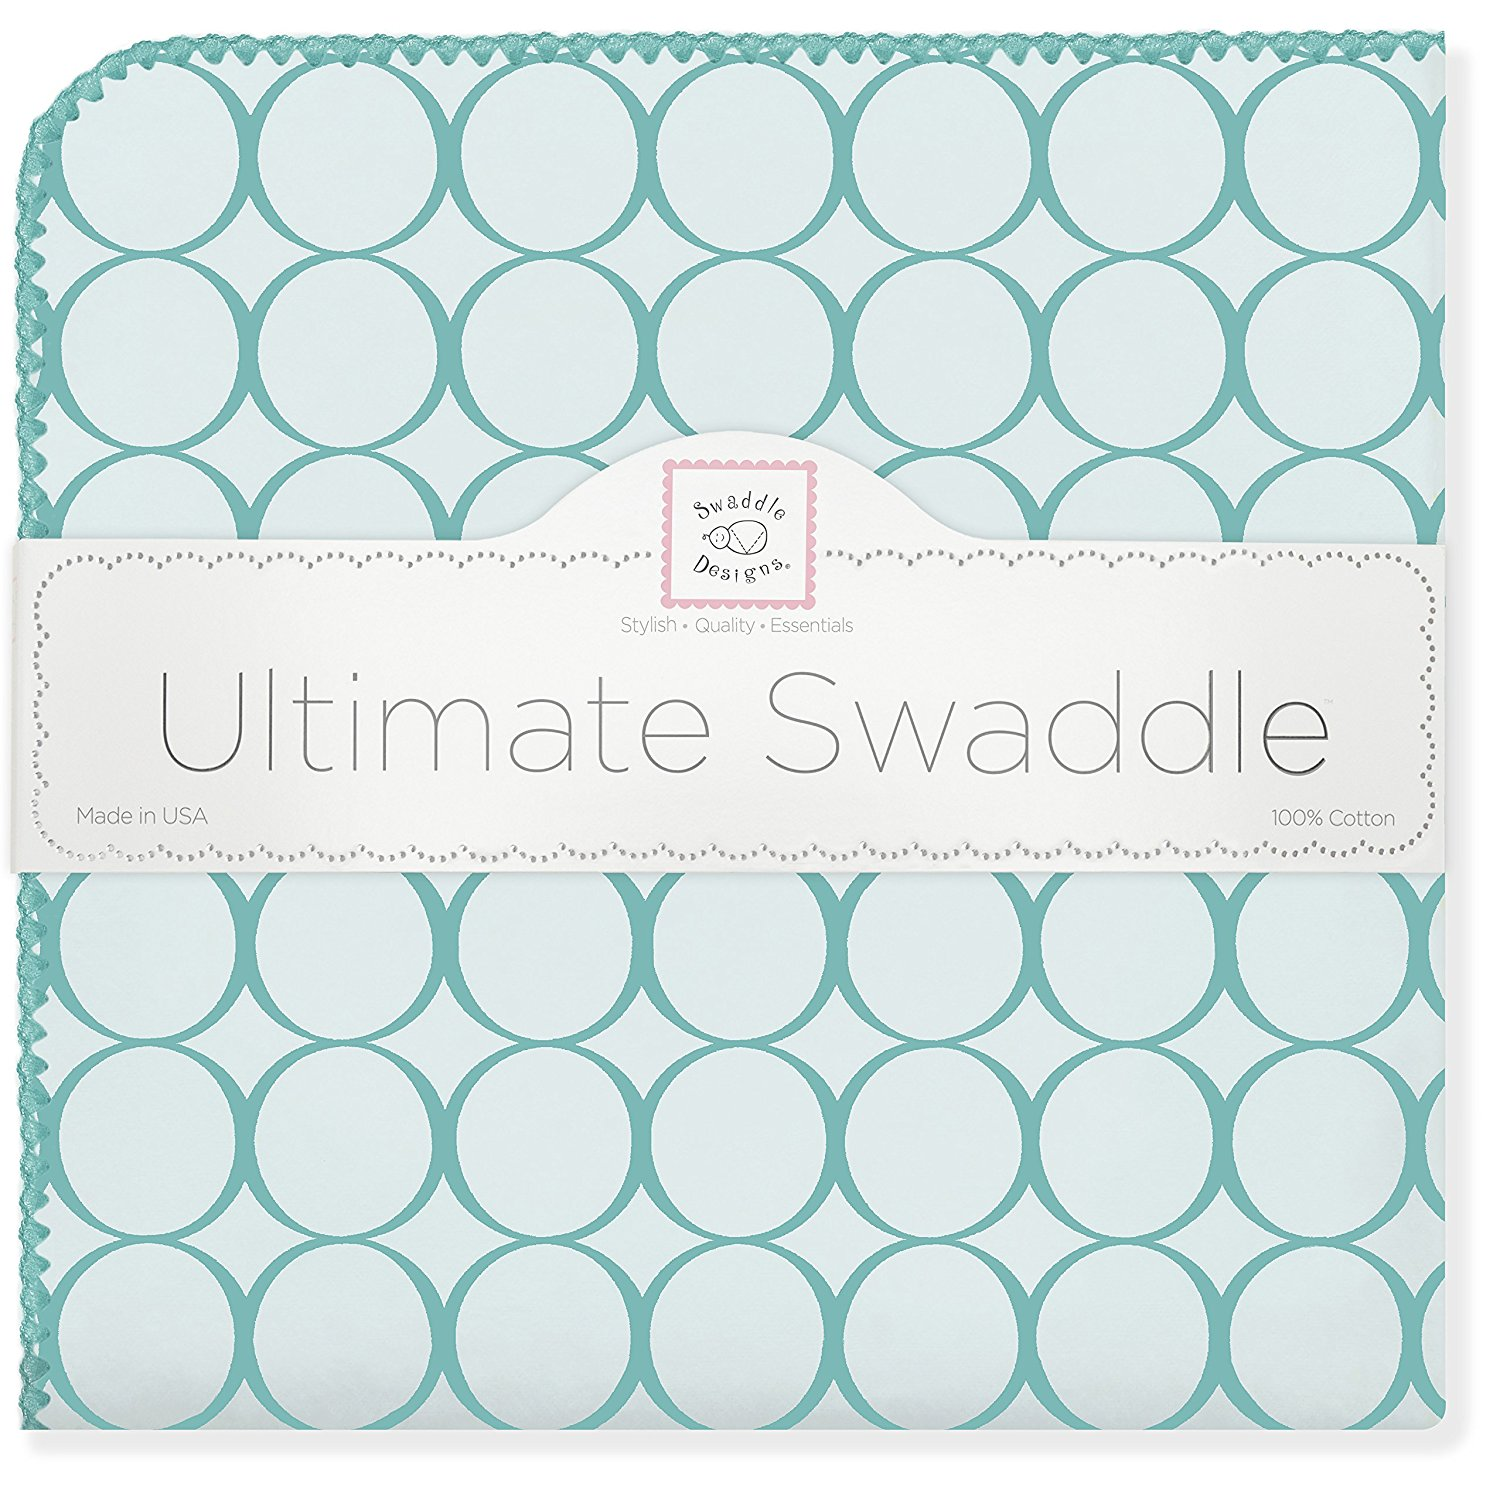 Swaddle Ultimate Swaddle Blanket, Made in USA, Premium Co...